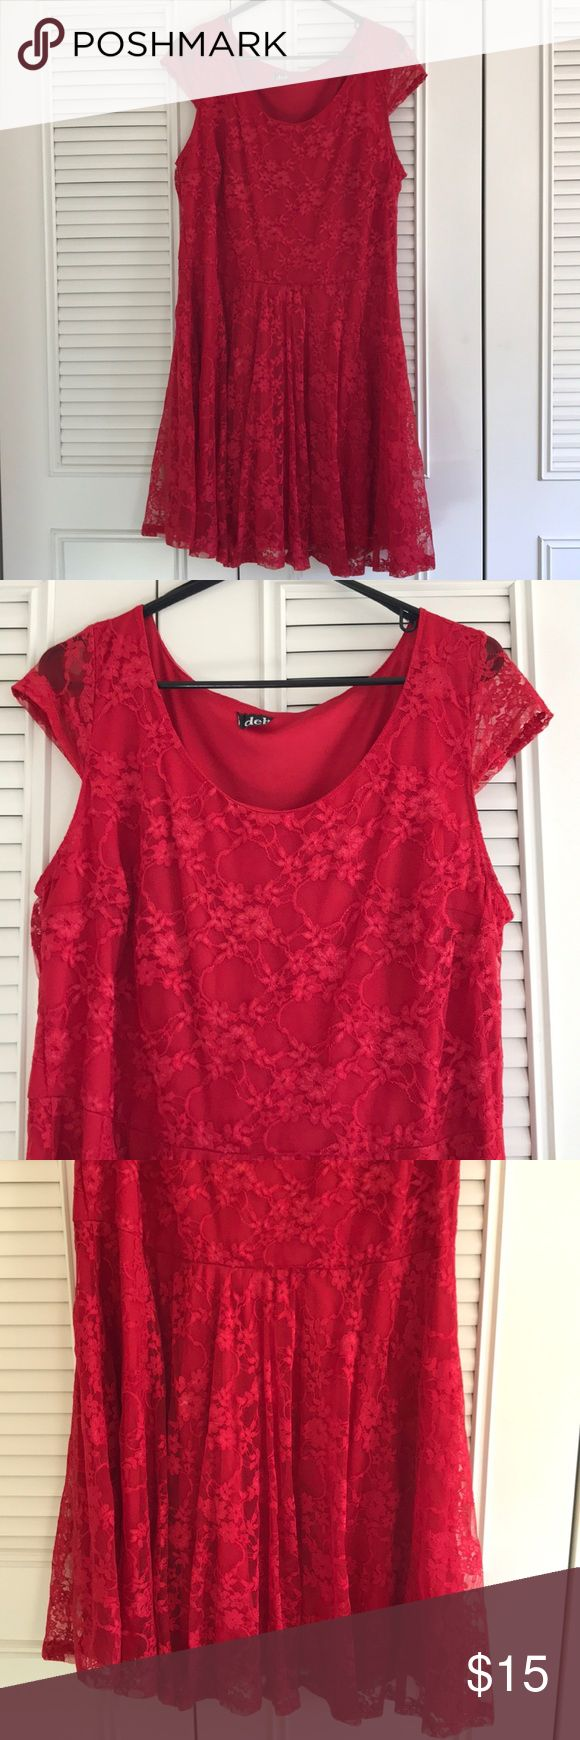 Red lace Deb Shops skater dress Size 2x bought for a photo shoot with my husband. Only worn that one time. Red skater dress with lace over lay. Capped sleeves. Very light and comfortable Deb Dresses Asymmetrical